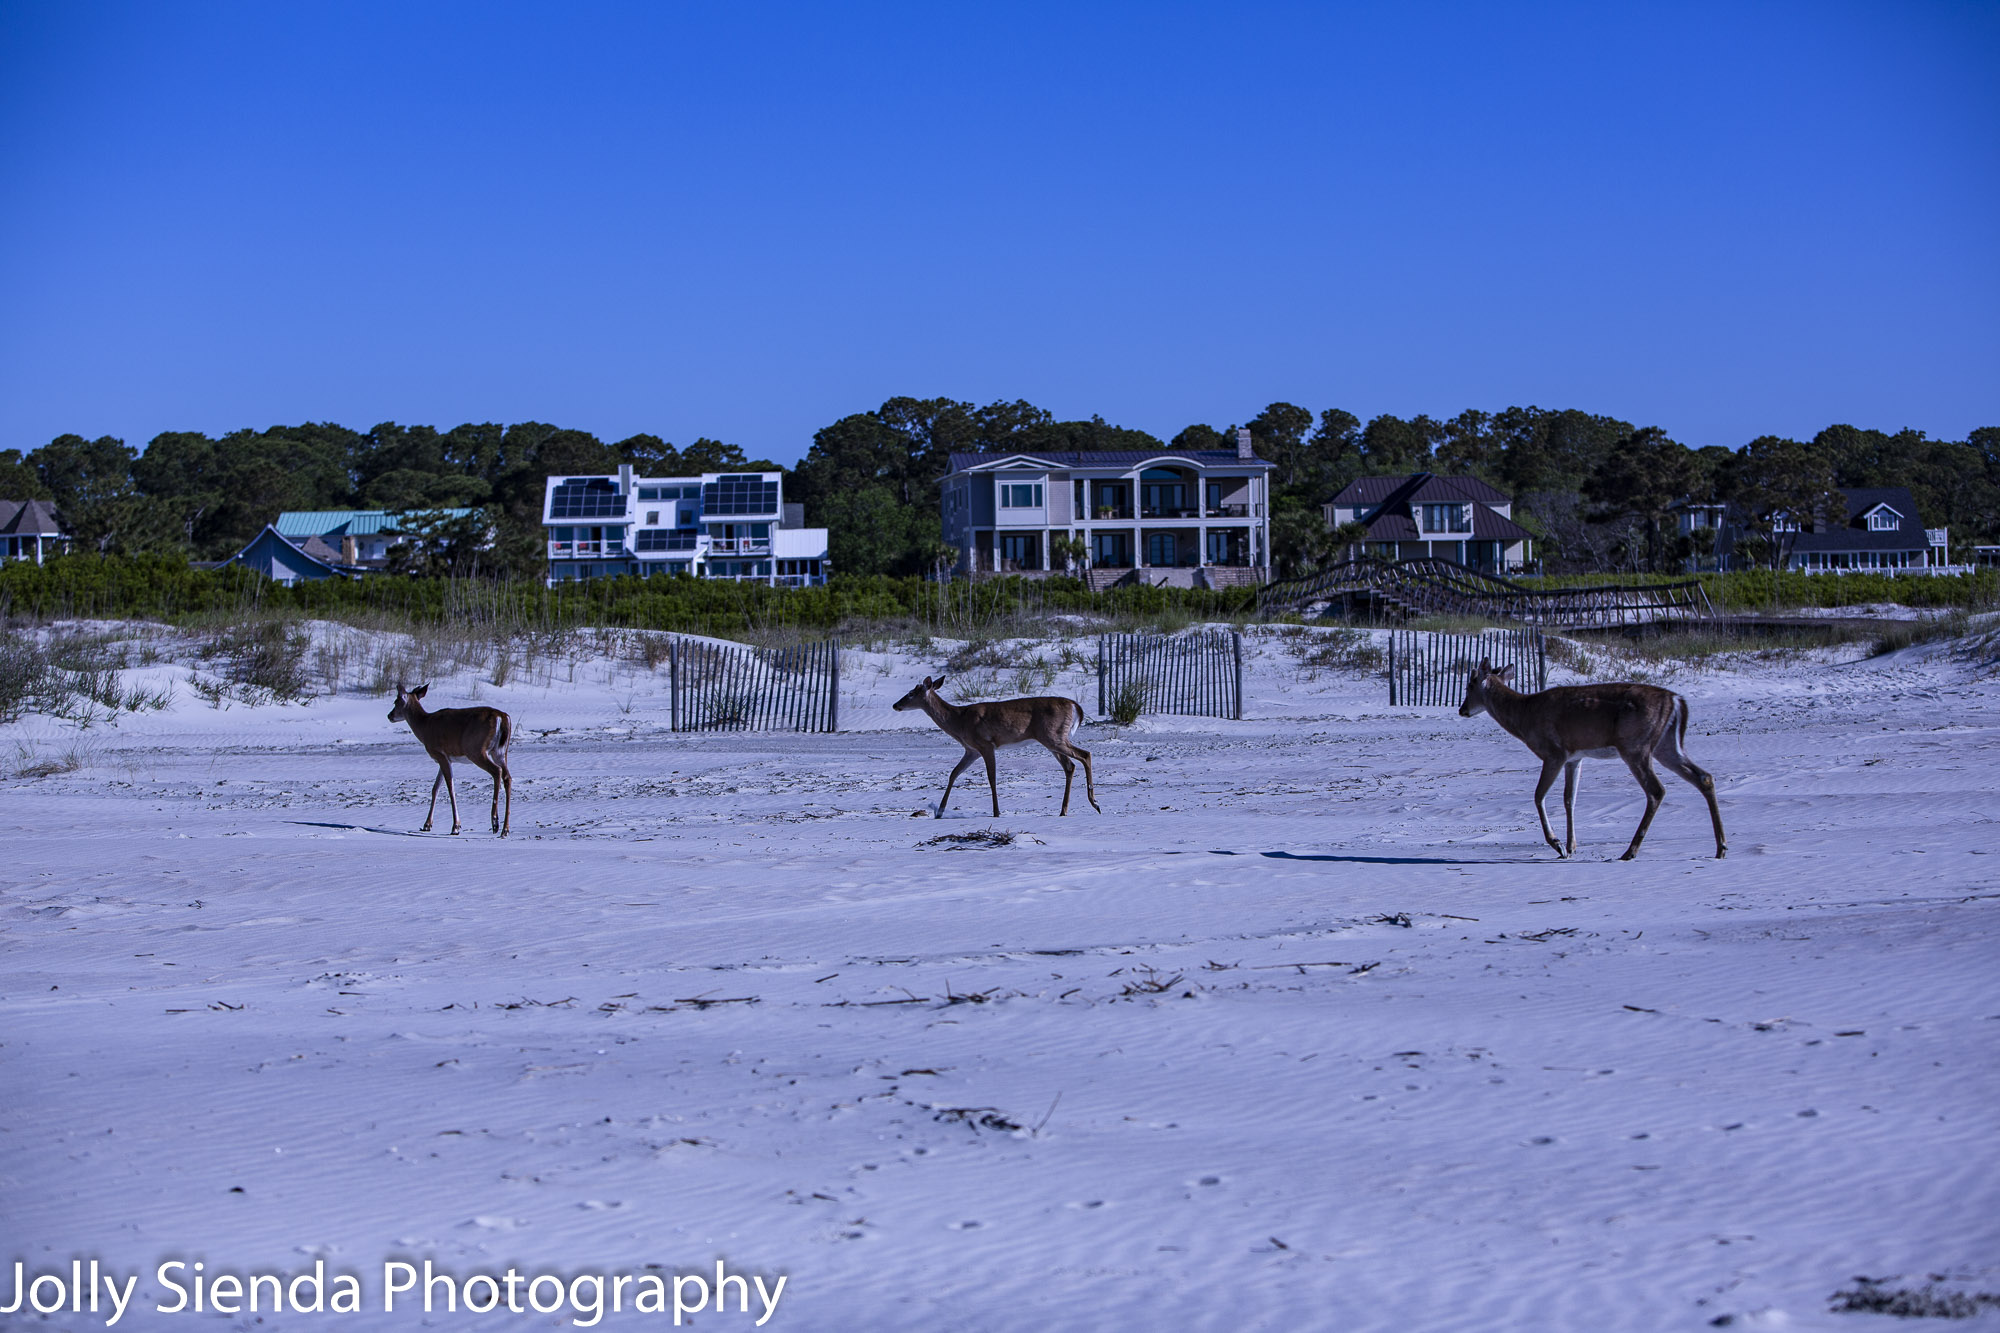 Three deer trotting on the beach